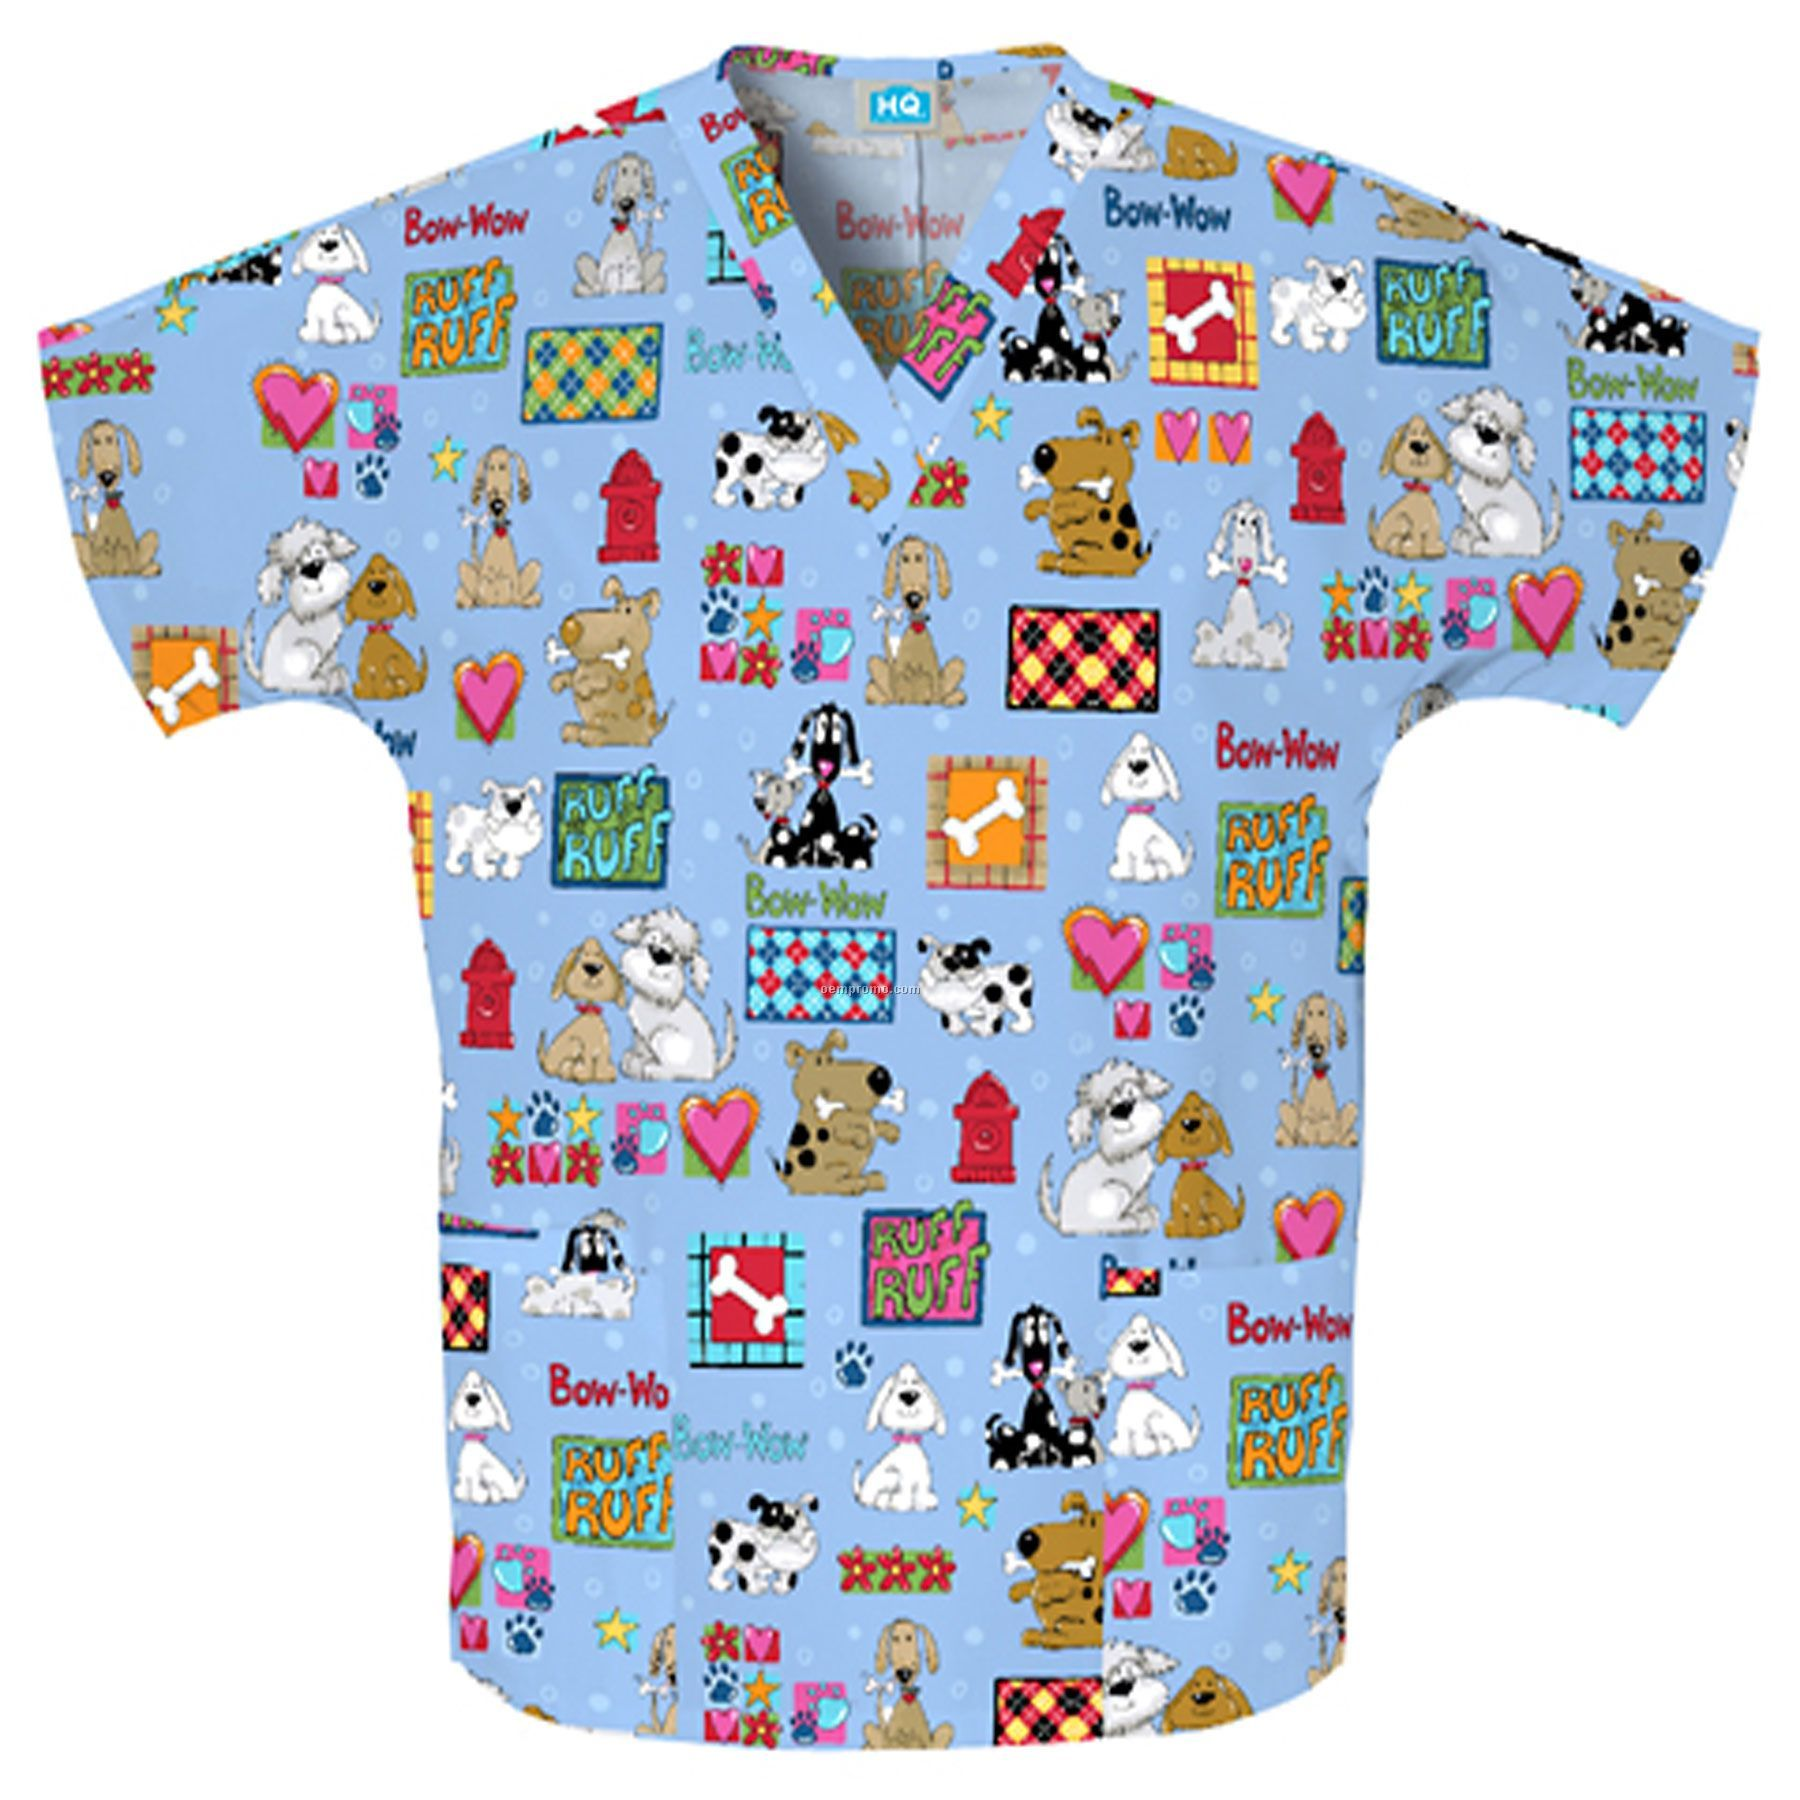 Unisex Two Pocket Top (Bow-wow Print)